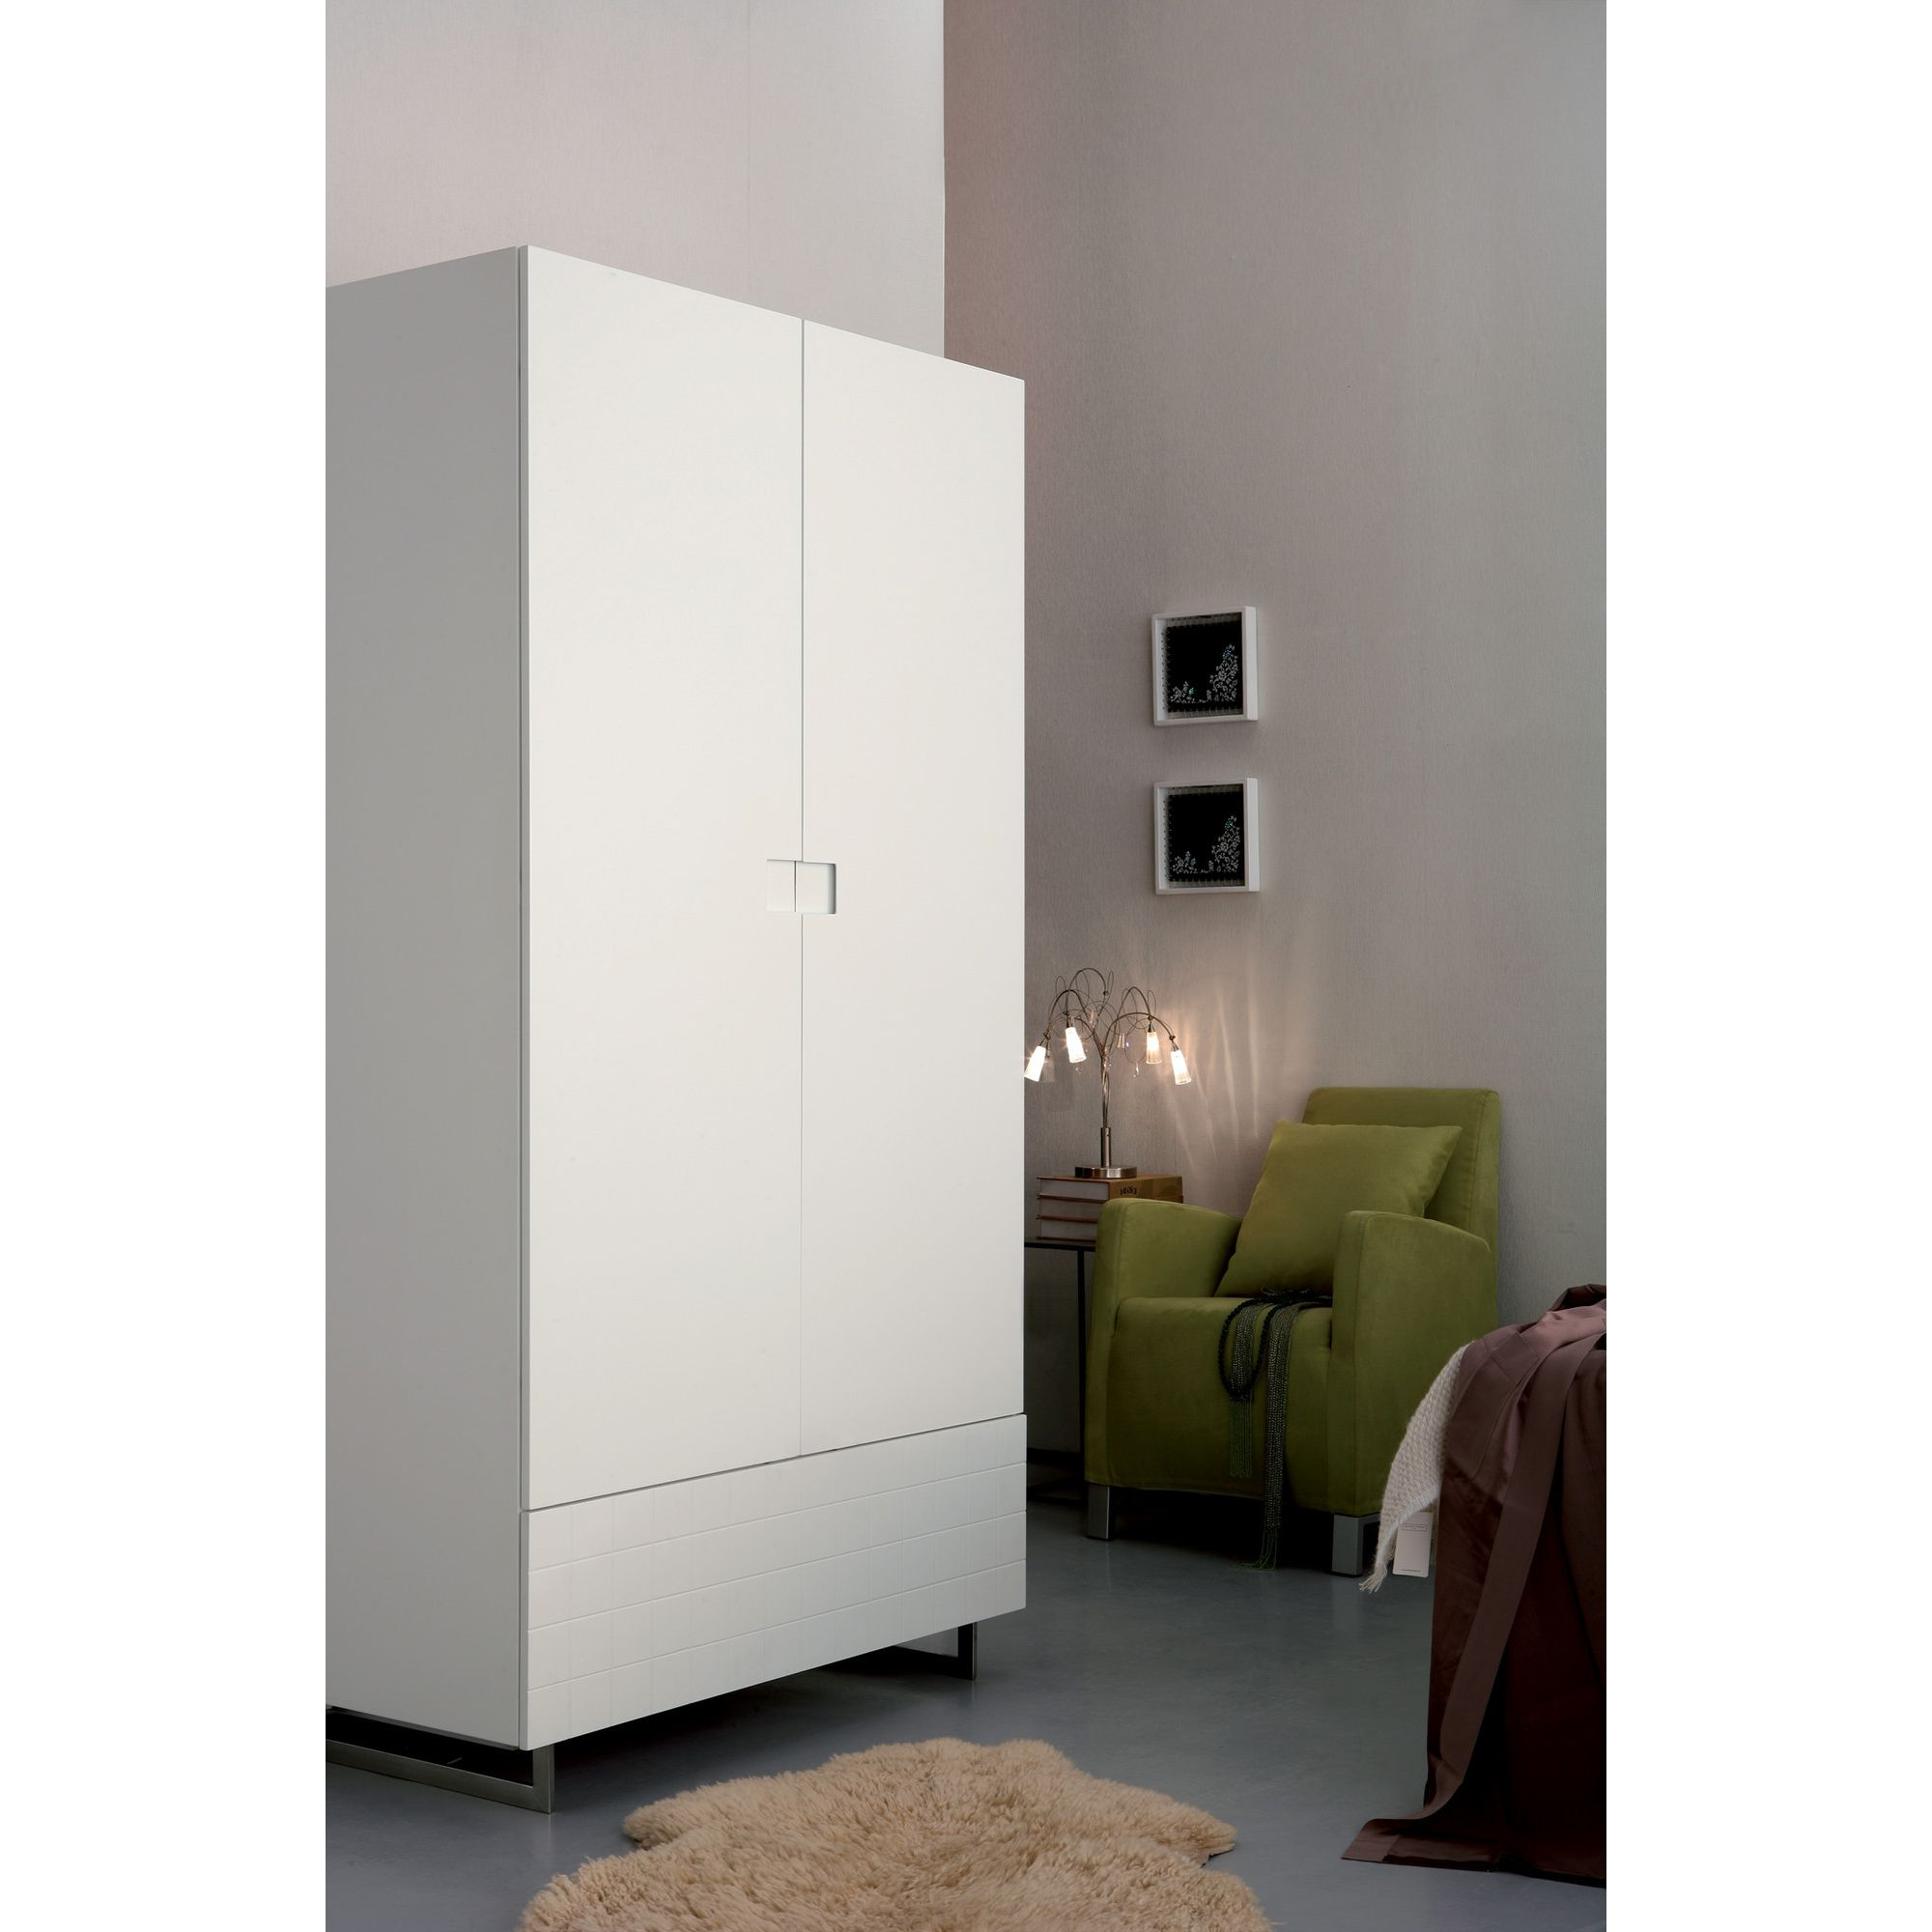 Gillmore Space Barcelona Wardrobe - White Lacquer (Matt) at Tescos Direct